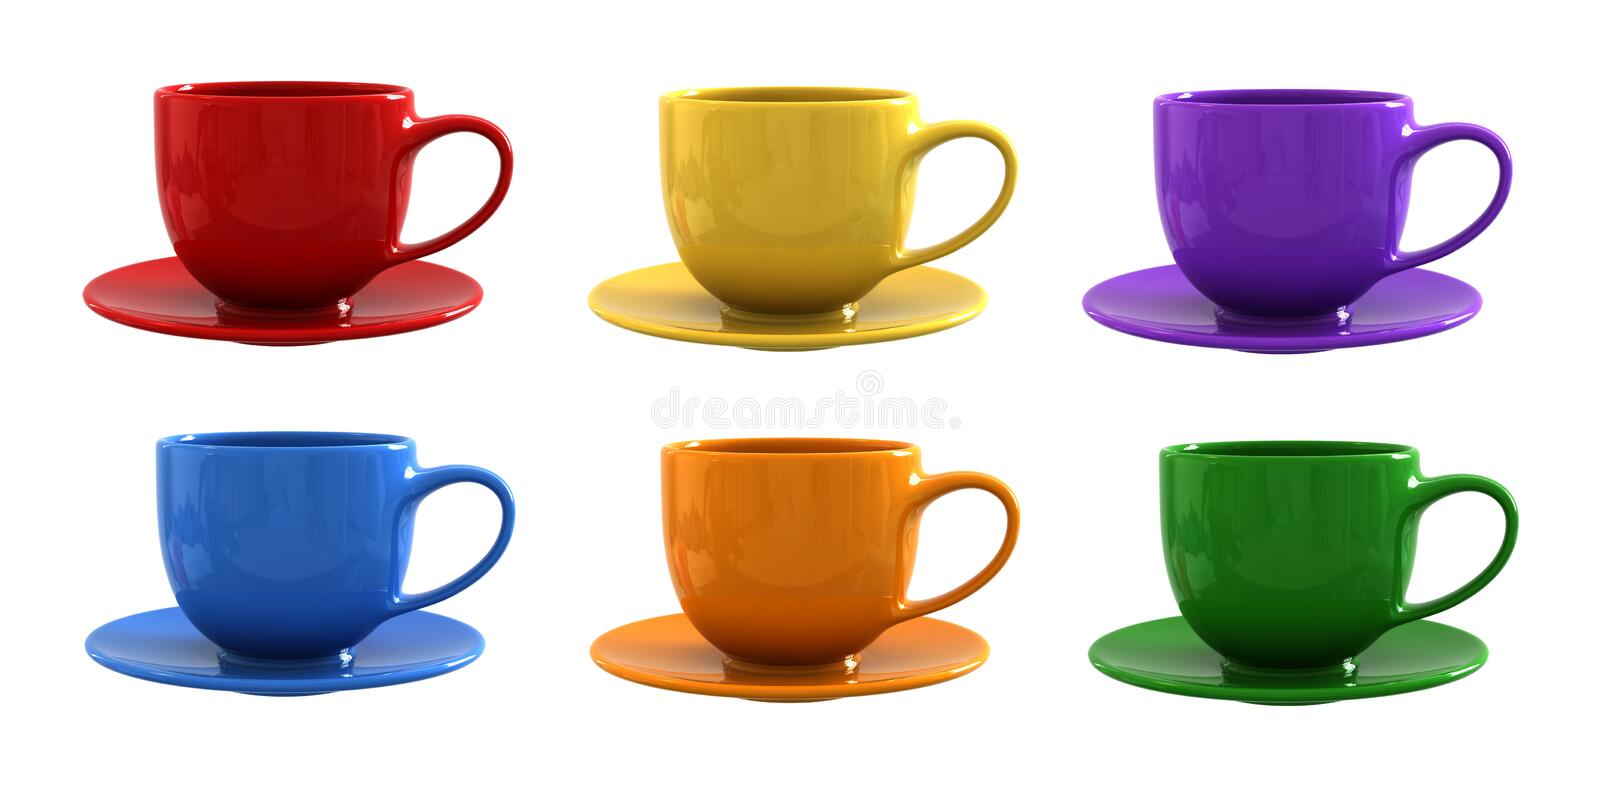 Download Cups and saucers stock illustration. Illustration of saucer - 28904356